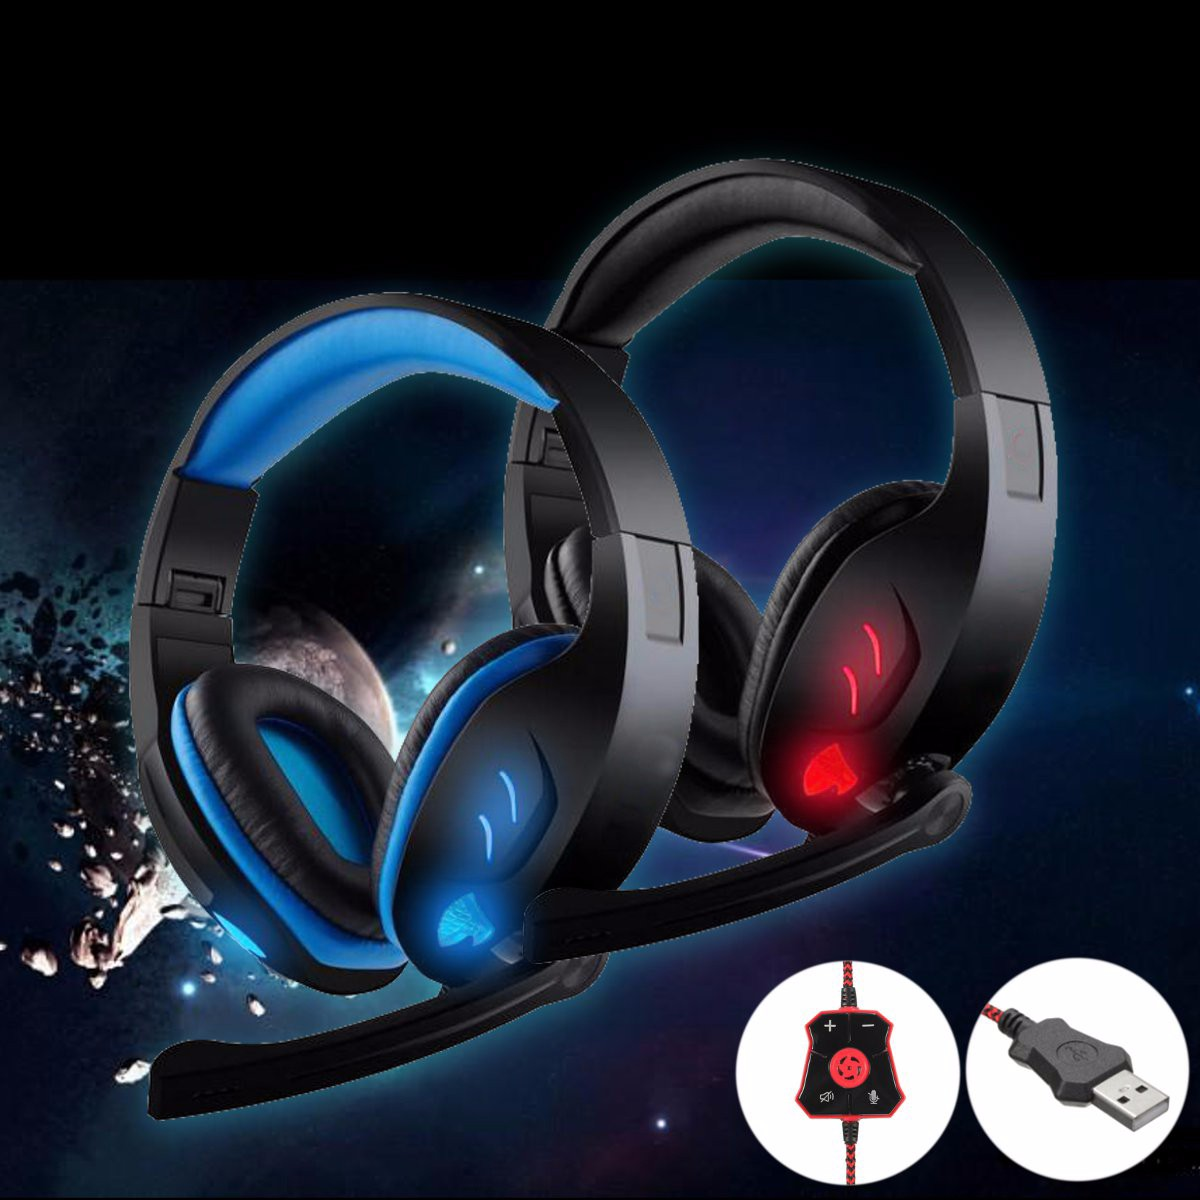 New Arrival LED USB Gaming Headset 7.1 Stereo Foldable Headband Headphone With Mic For PC Headphones new foldable 3 5mm stereo headband headphone headset hand free call with microphone 1 5m cable for pc windows phone ios android